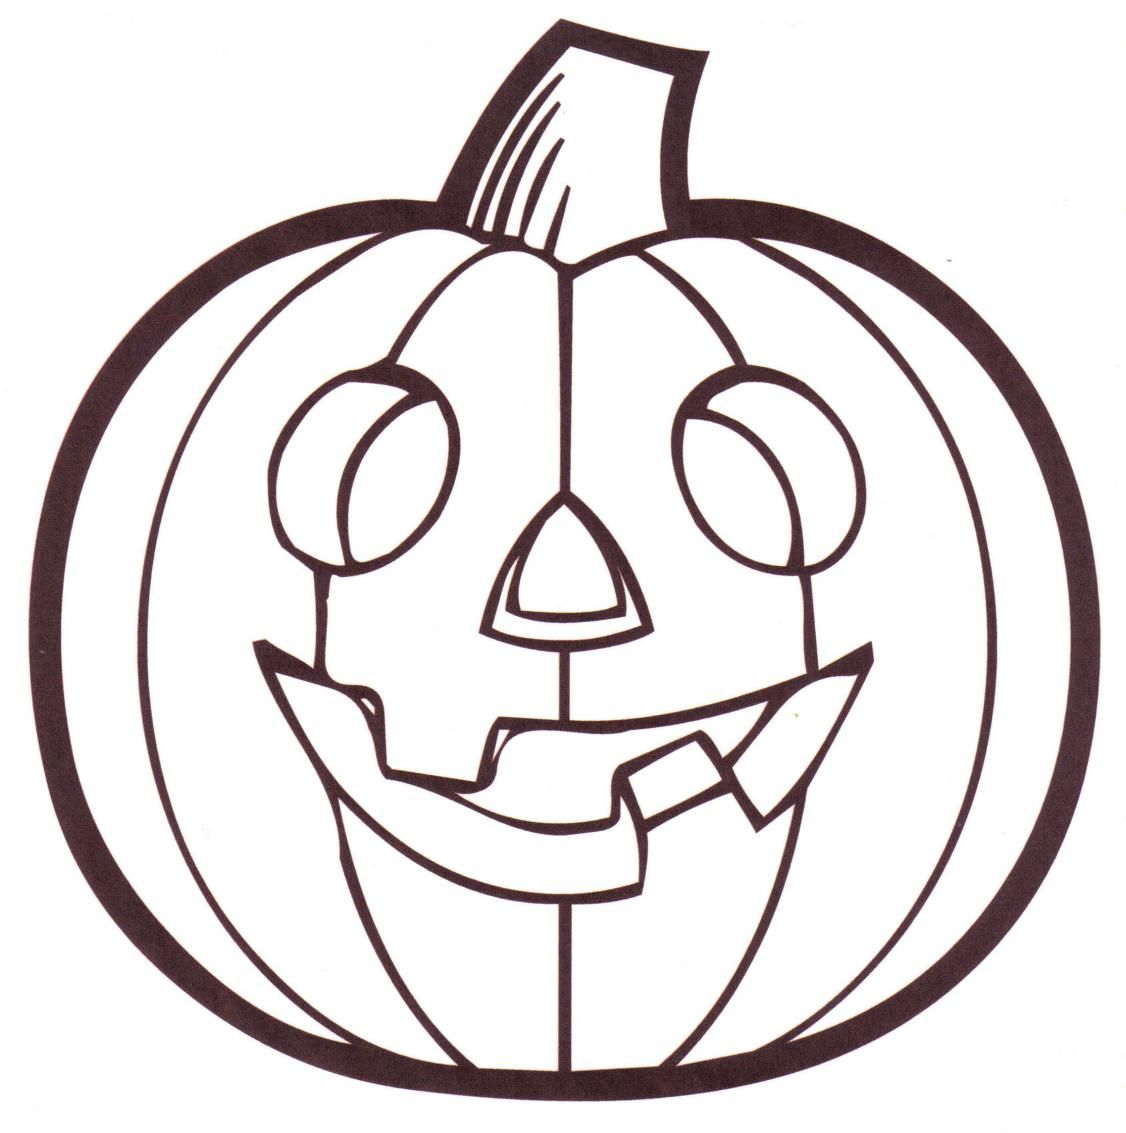 1126x1133 We Have Compiled A Set Of High Quality Pumpkin Coloring Pages